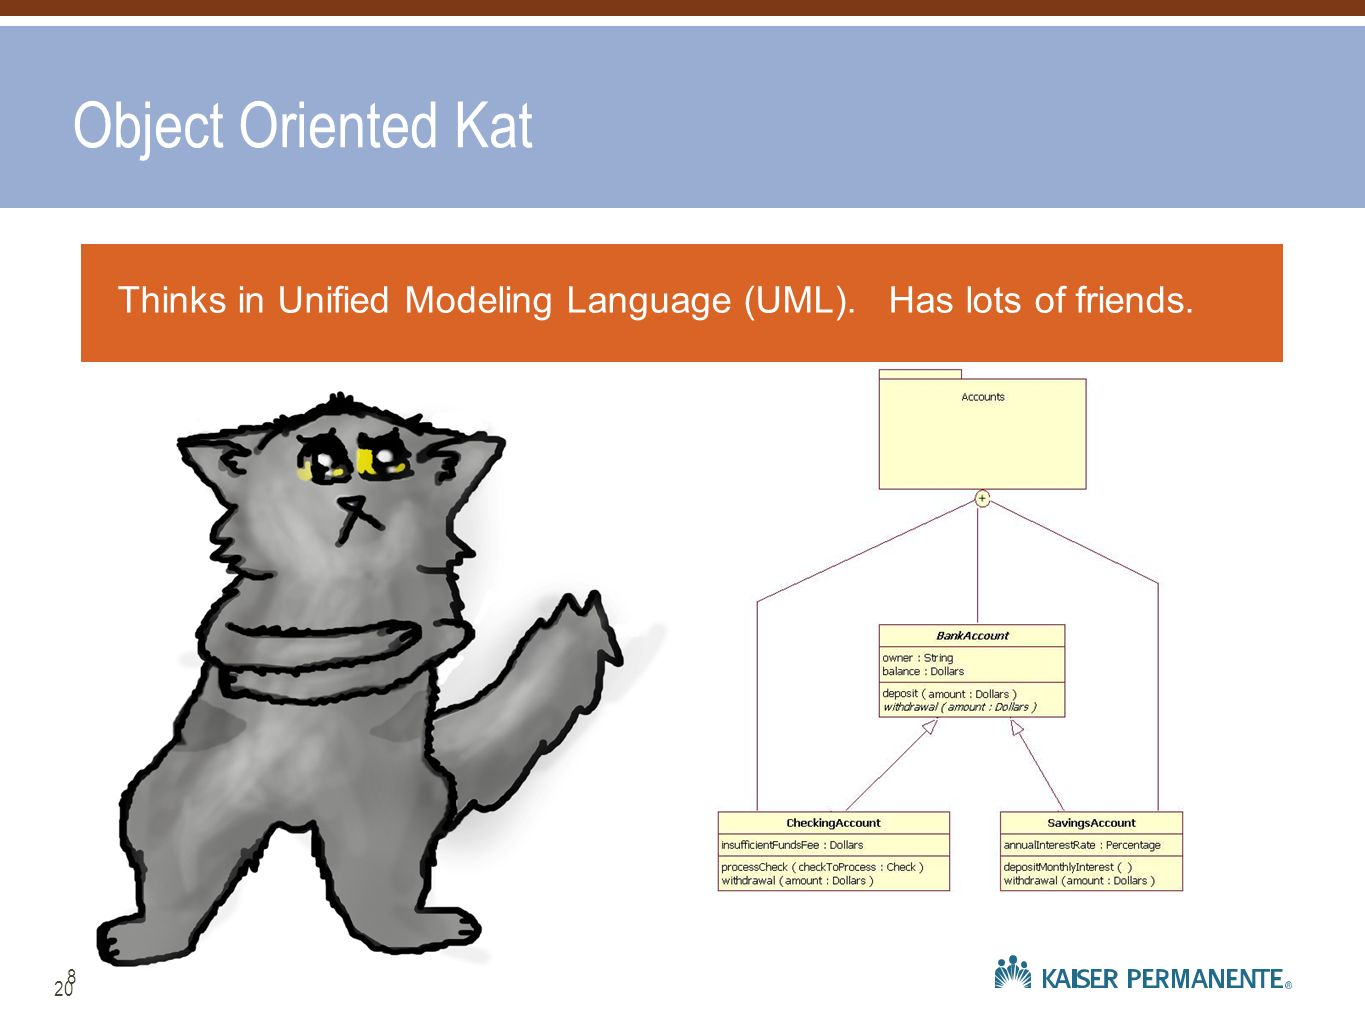 Object Oriented Kat Thinks in Unified Modeling Language (UML). Has lots of friends. 8